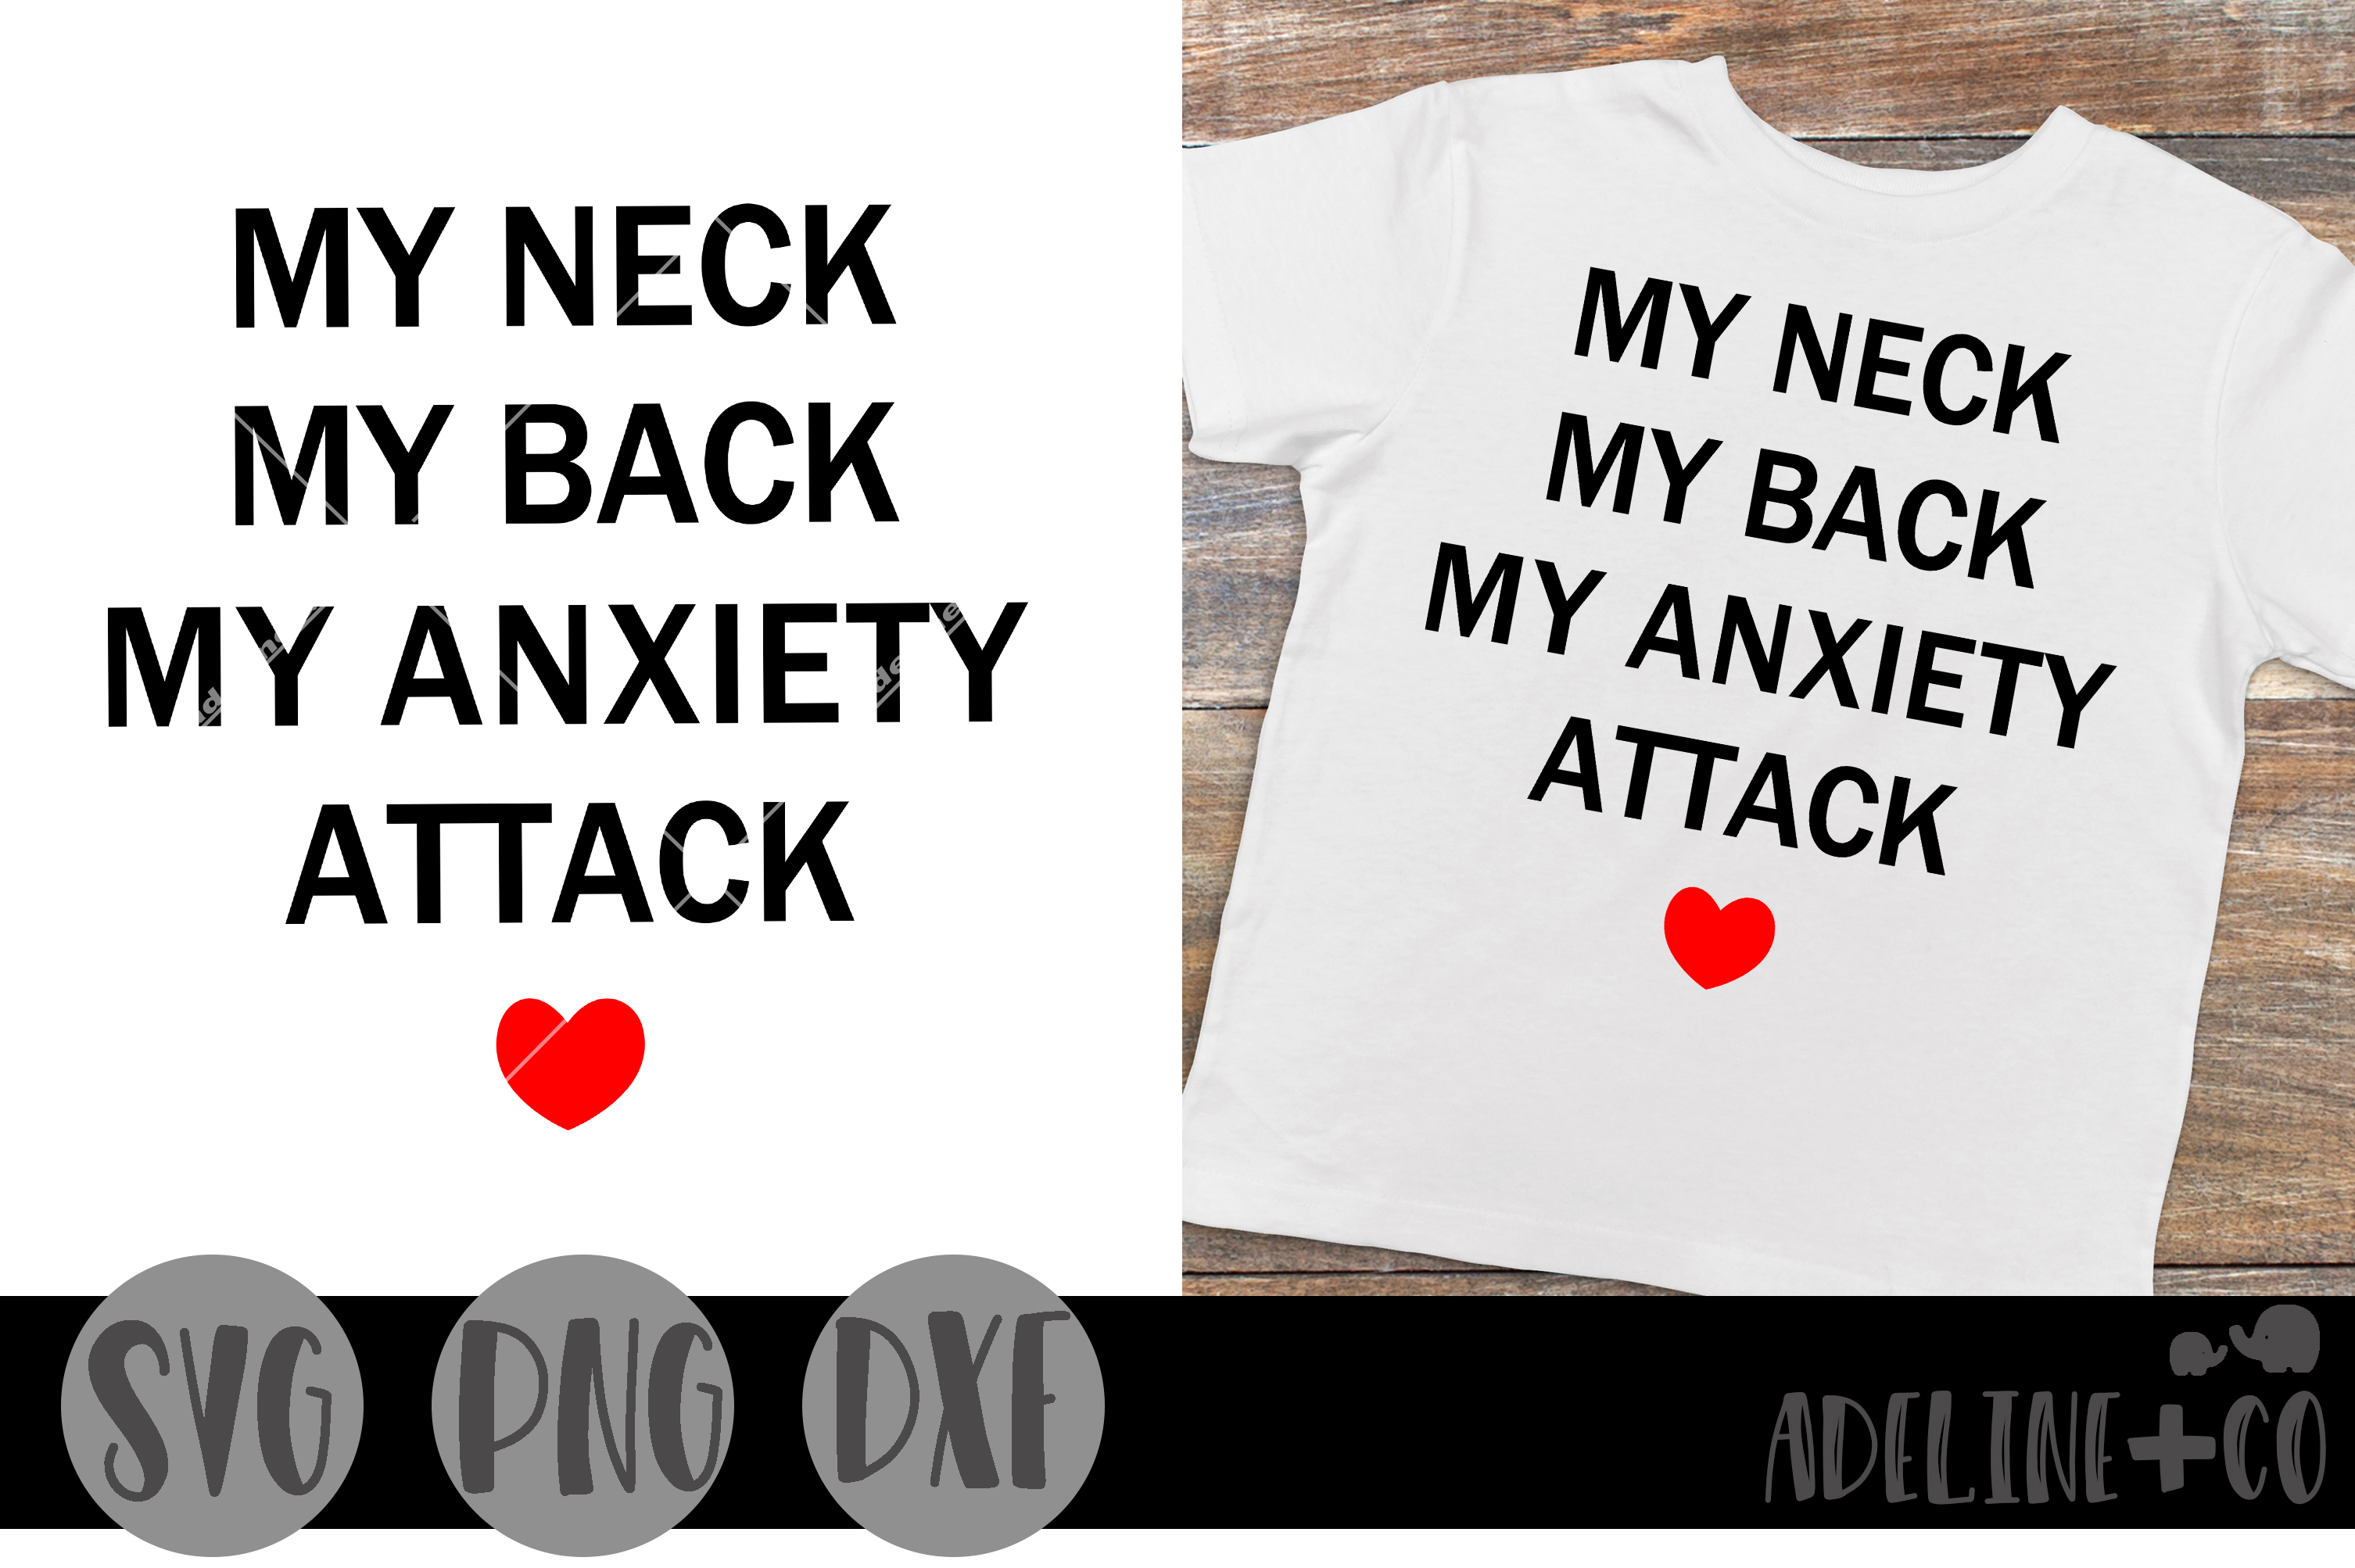 Download Free My Neck My Back My Anxiety Attack Graphic By Adelinenco for Cricut Explore, Silhouette and other cutting machines.